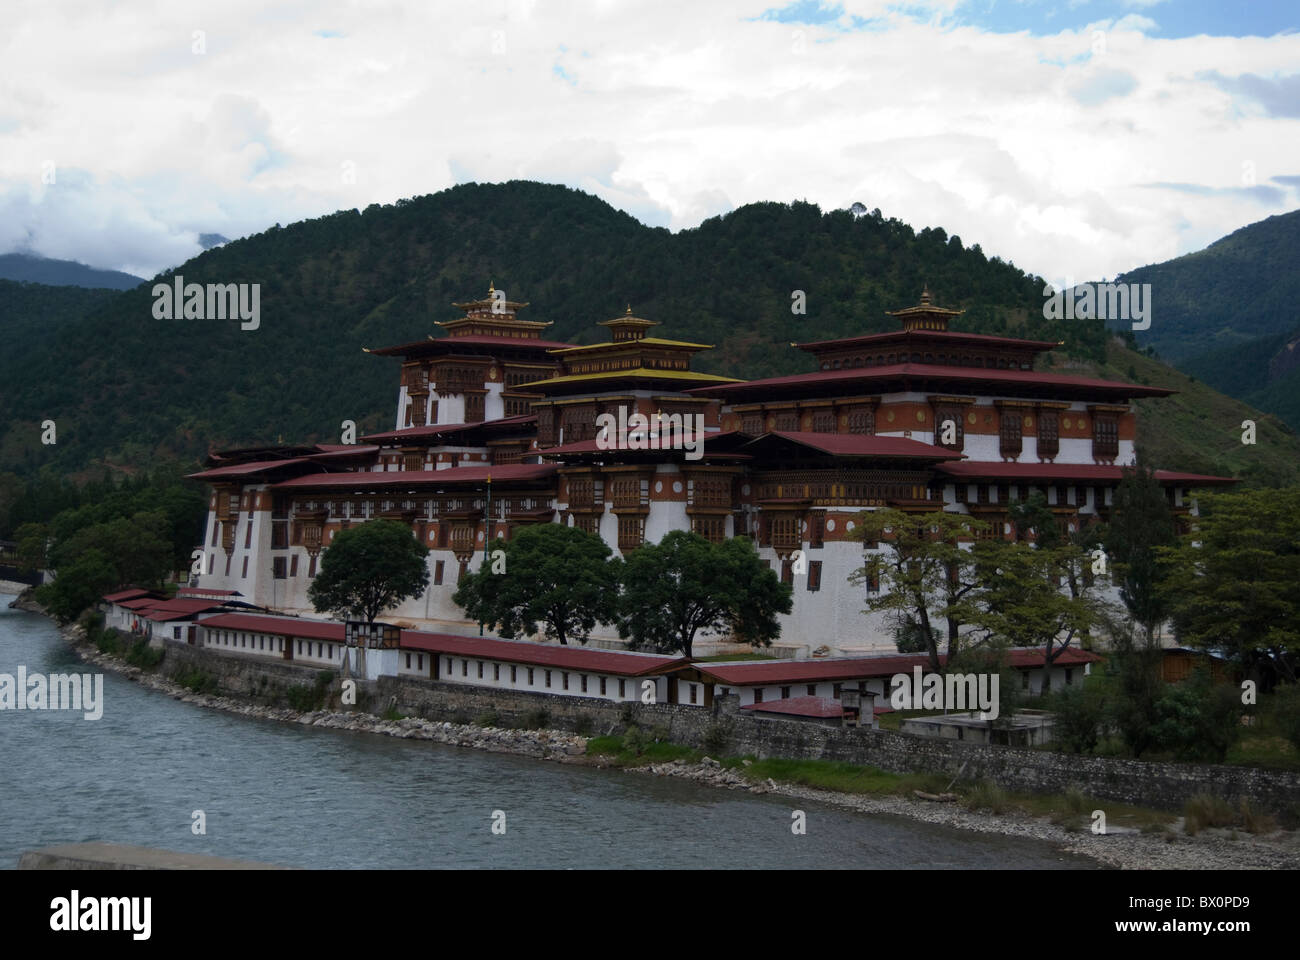 Elegant Punakha Dzong or the palace of happiness and bliss - Stock Image